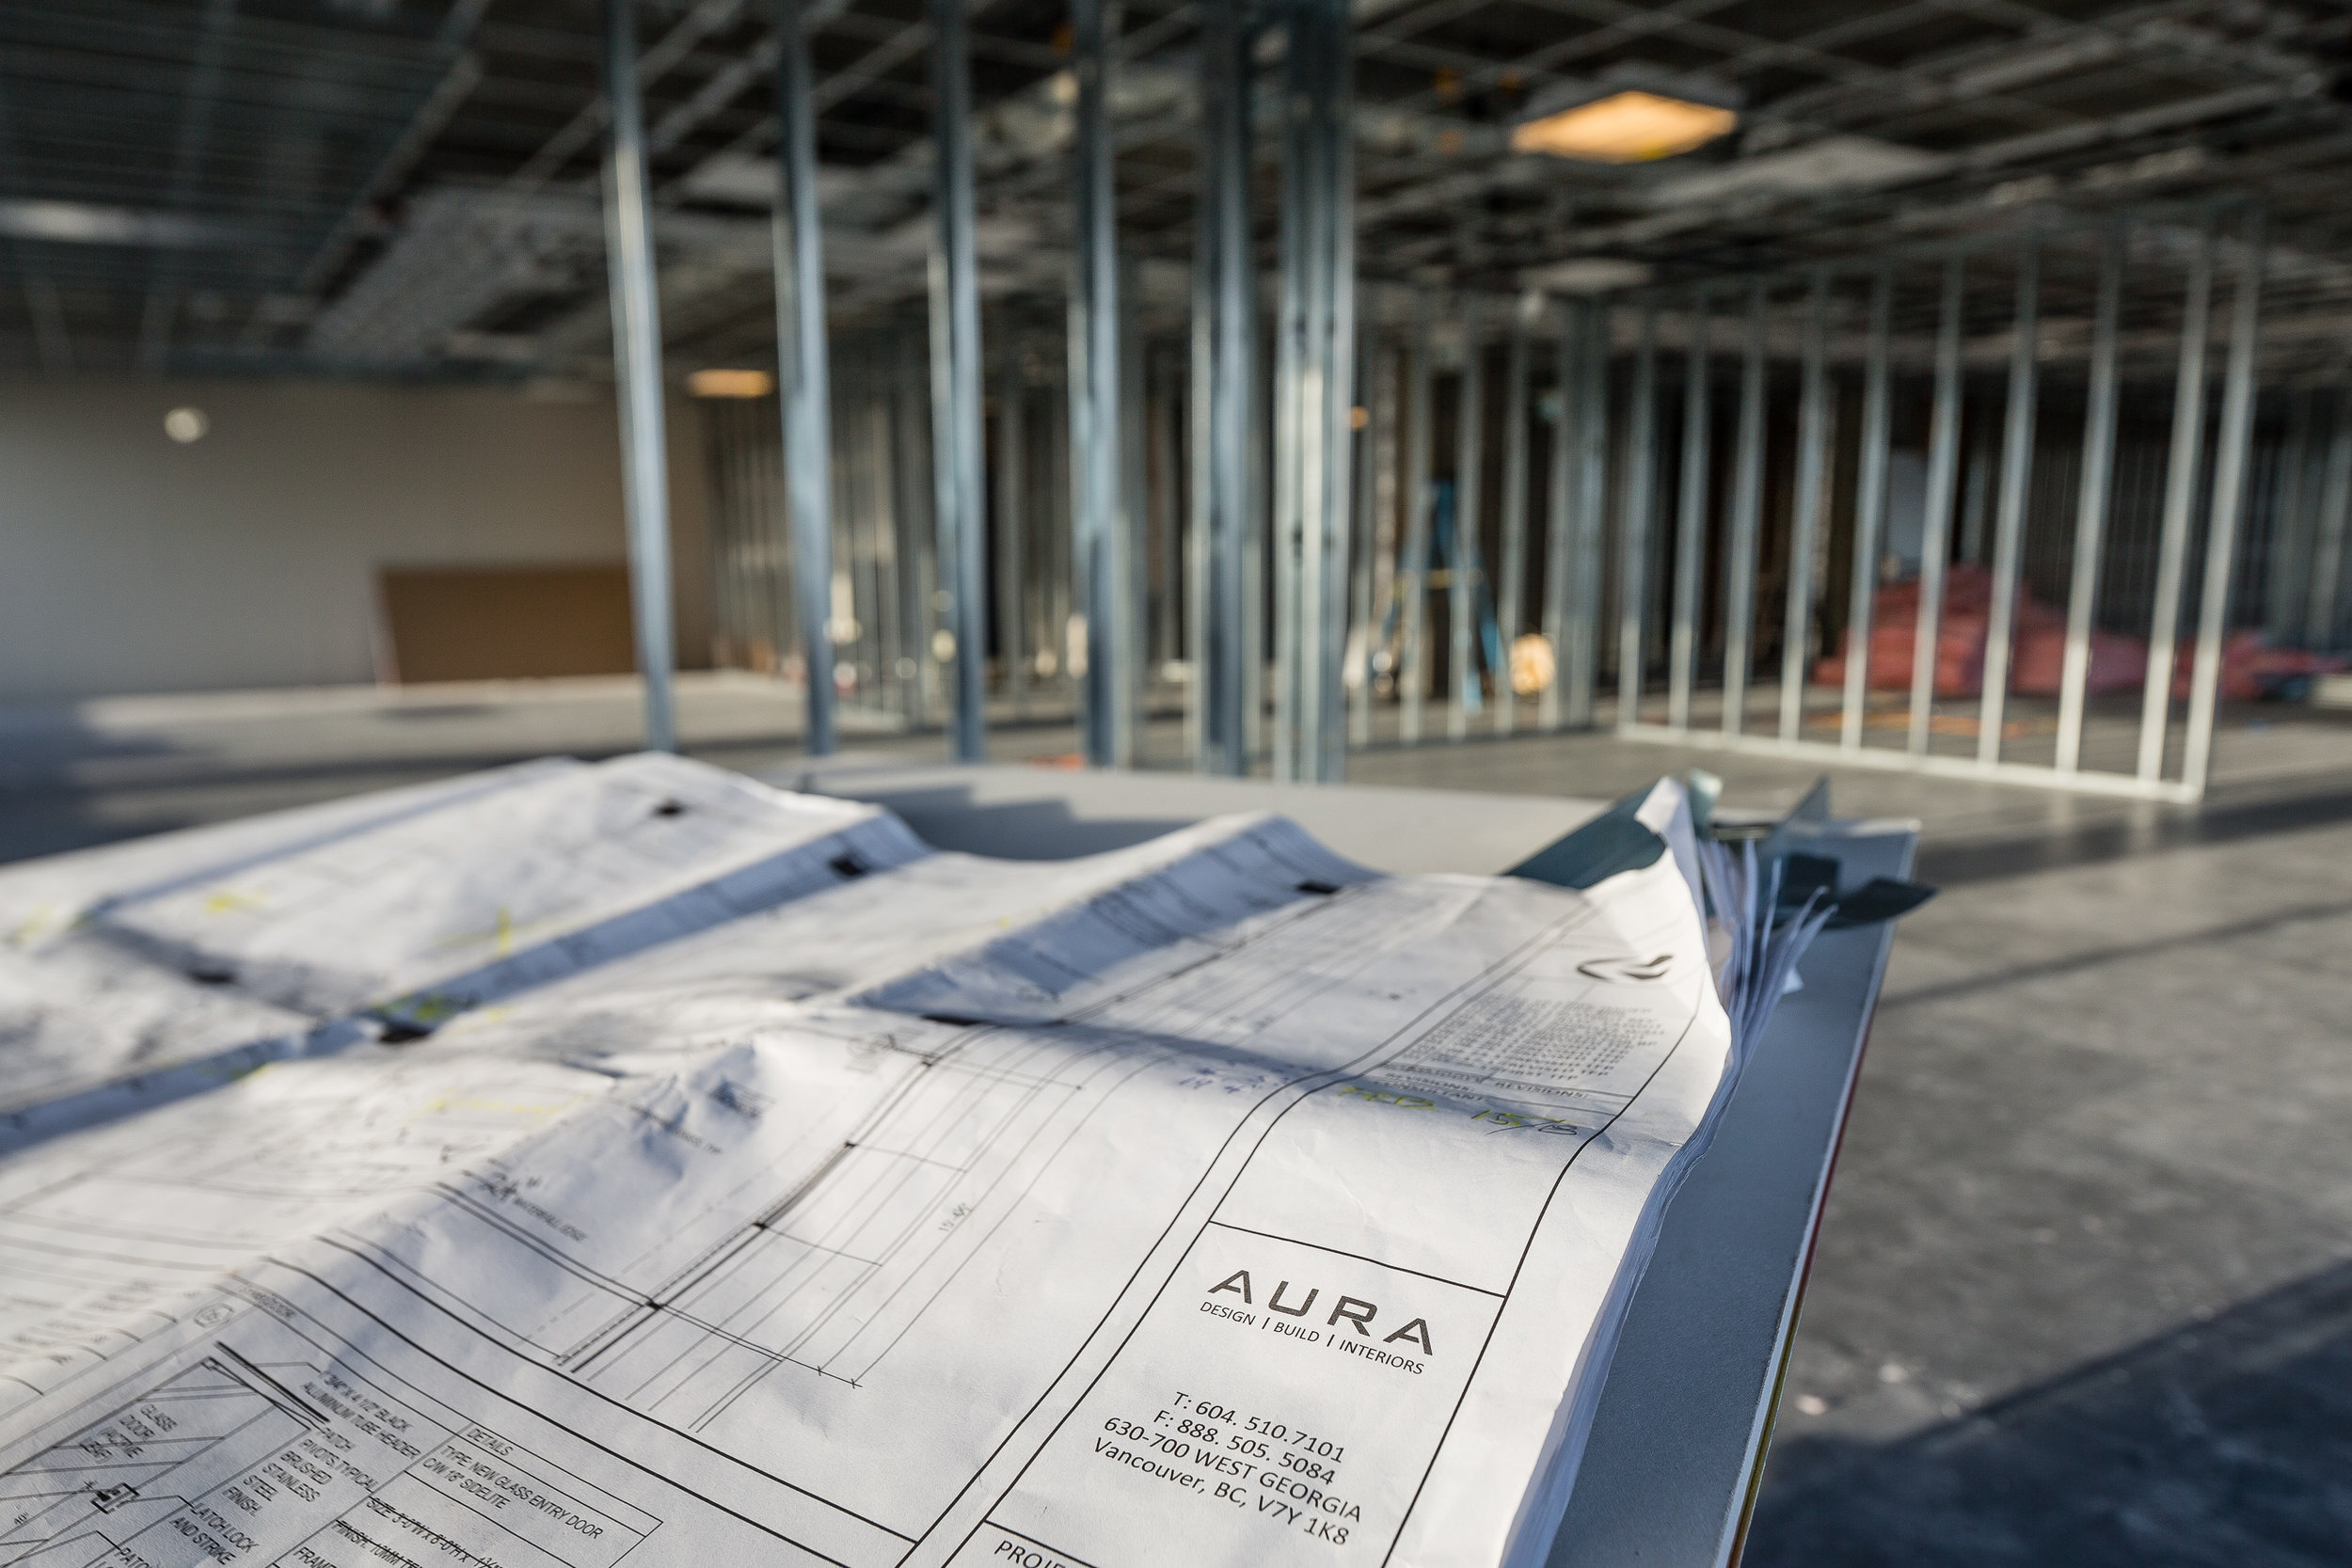 Design plans in a contruction site for interior design company Aura interiors